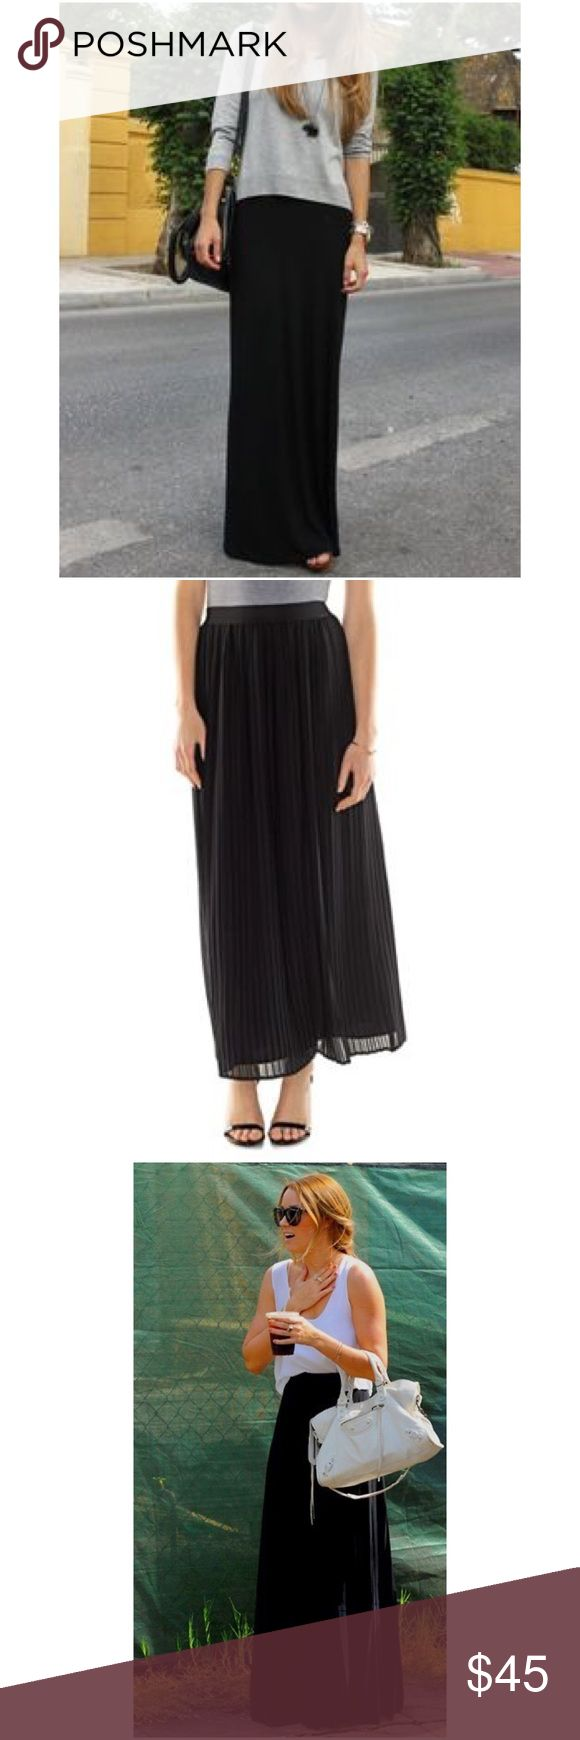 "LAUREN CONRAD BLACK PLEATED CHIFFON MAXI SKIRT You'll love the stylish charm of this women's LC Lauren Conrad black pleated chiffon fully-lined maxi skirt.  PRODUCT FEATURES Pleated design Lightweight chiffon construction Lined FIT & SIZING 39-in. approximate length 30"" elastic waistband FABRIC & CARE Skirt & lining: polyester Machine wash LC Lauren Conrad Skirts Maxi"